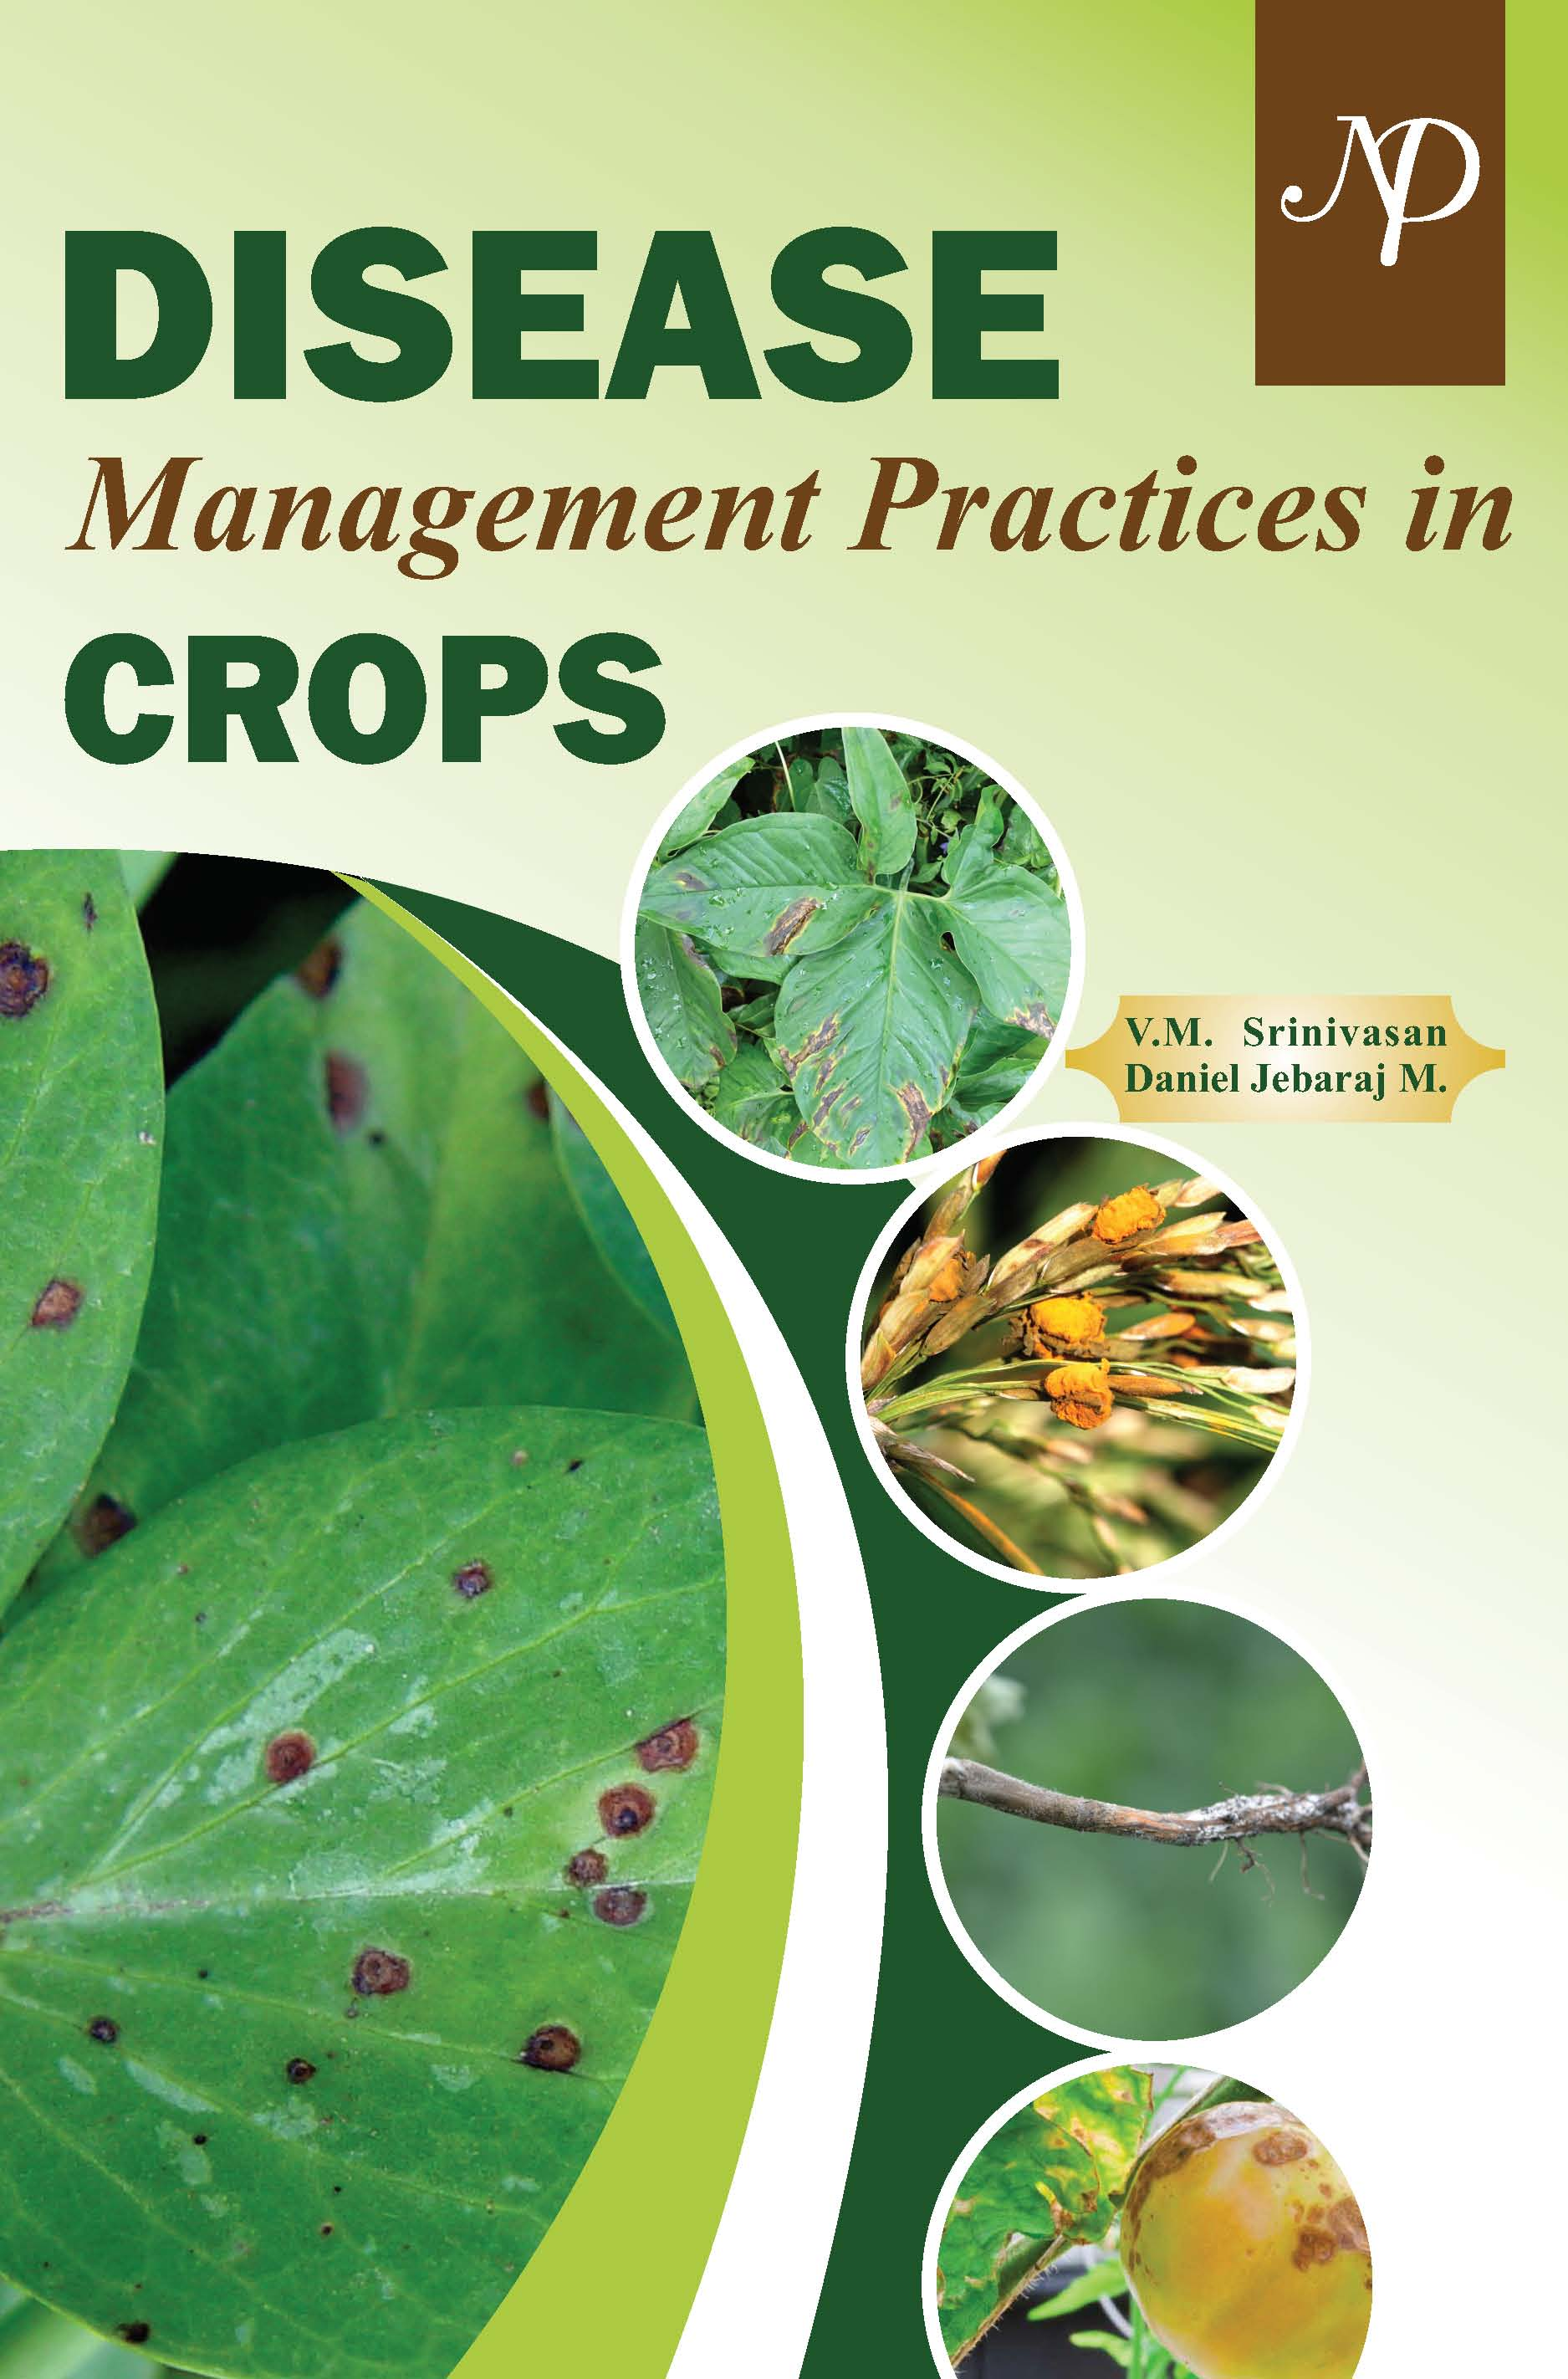 disease management practices in crops.jpg